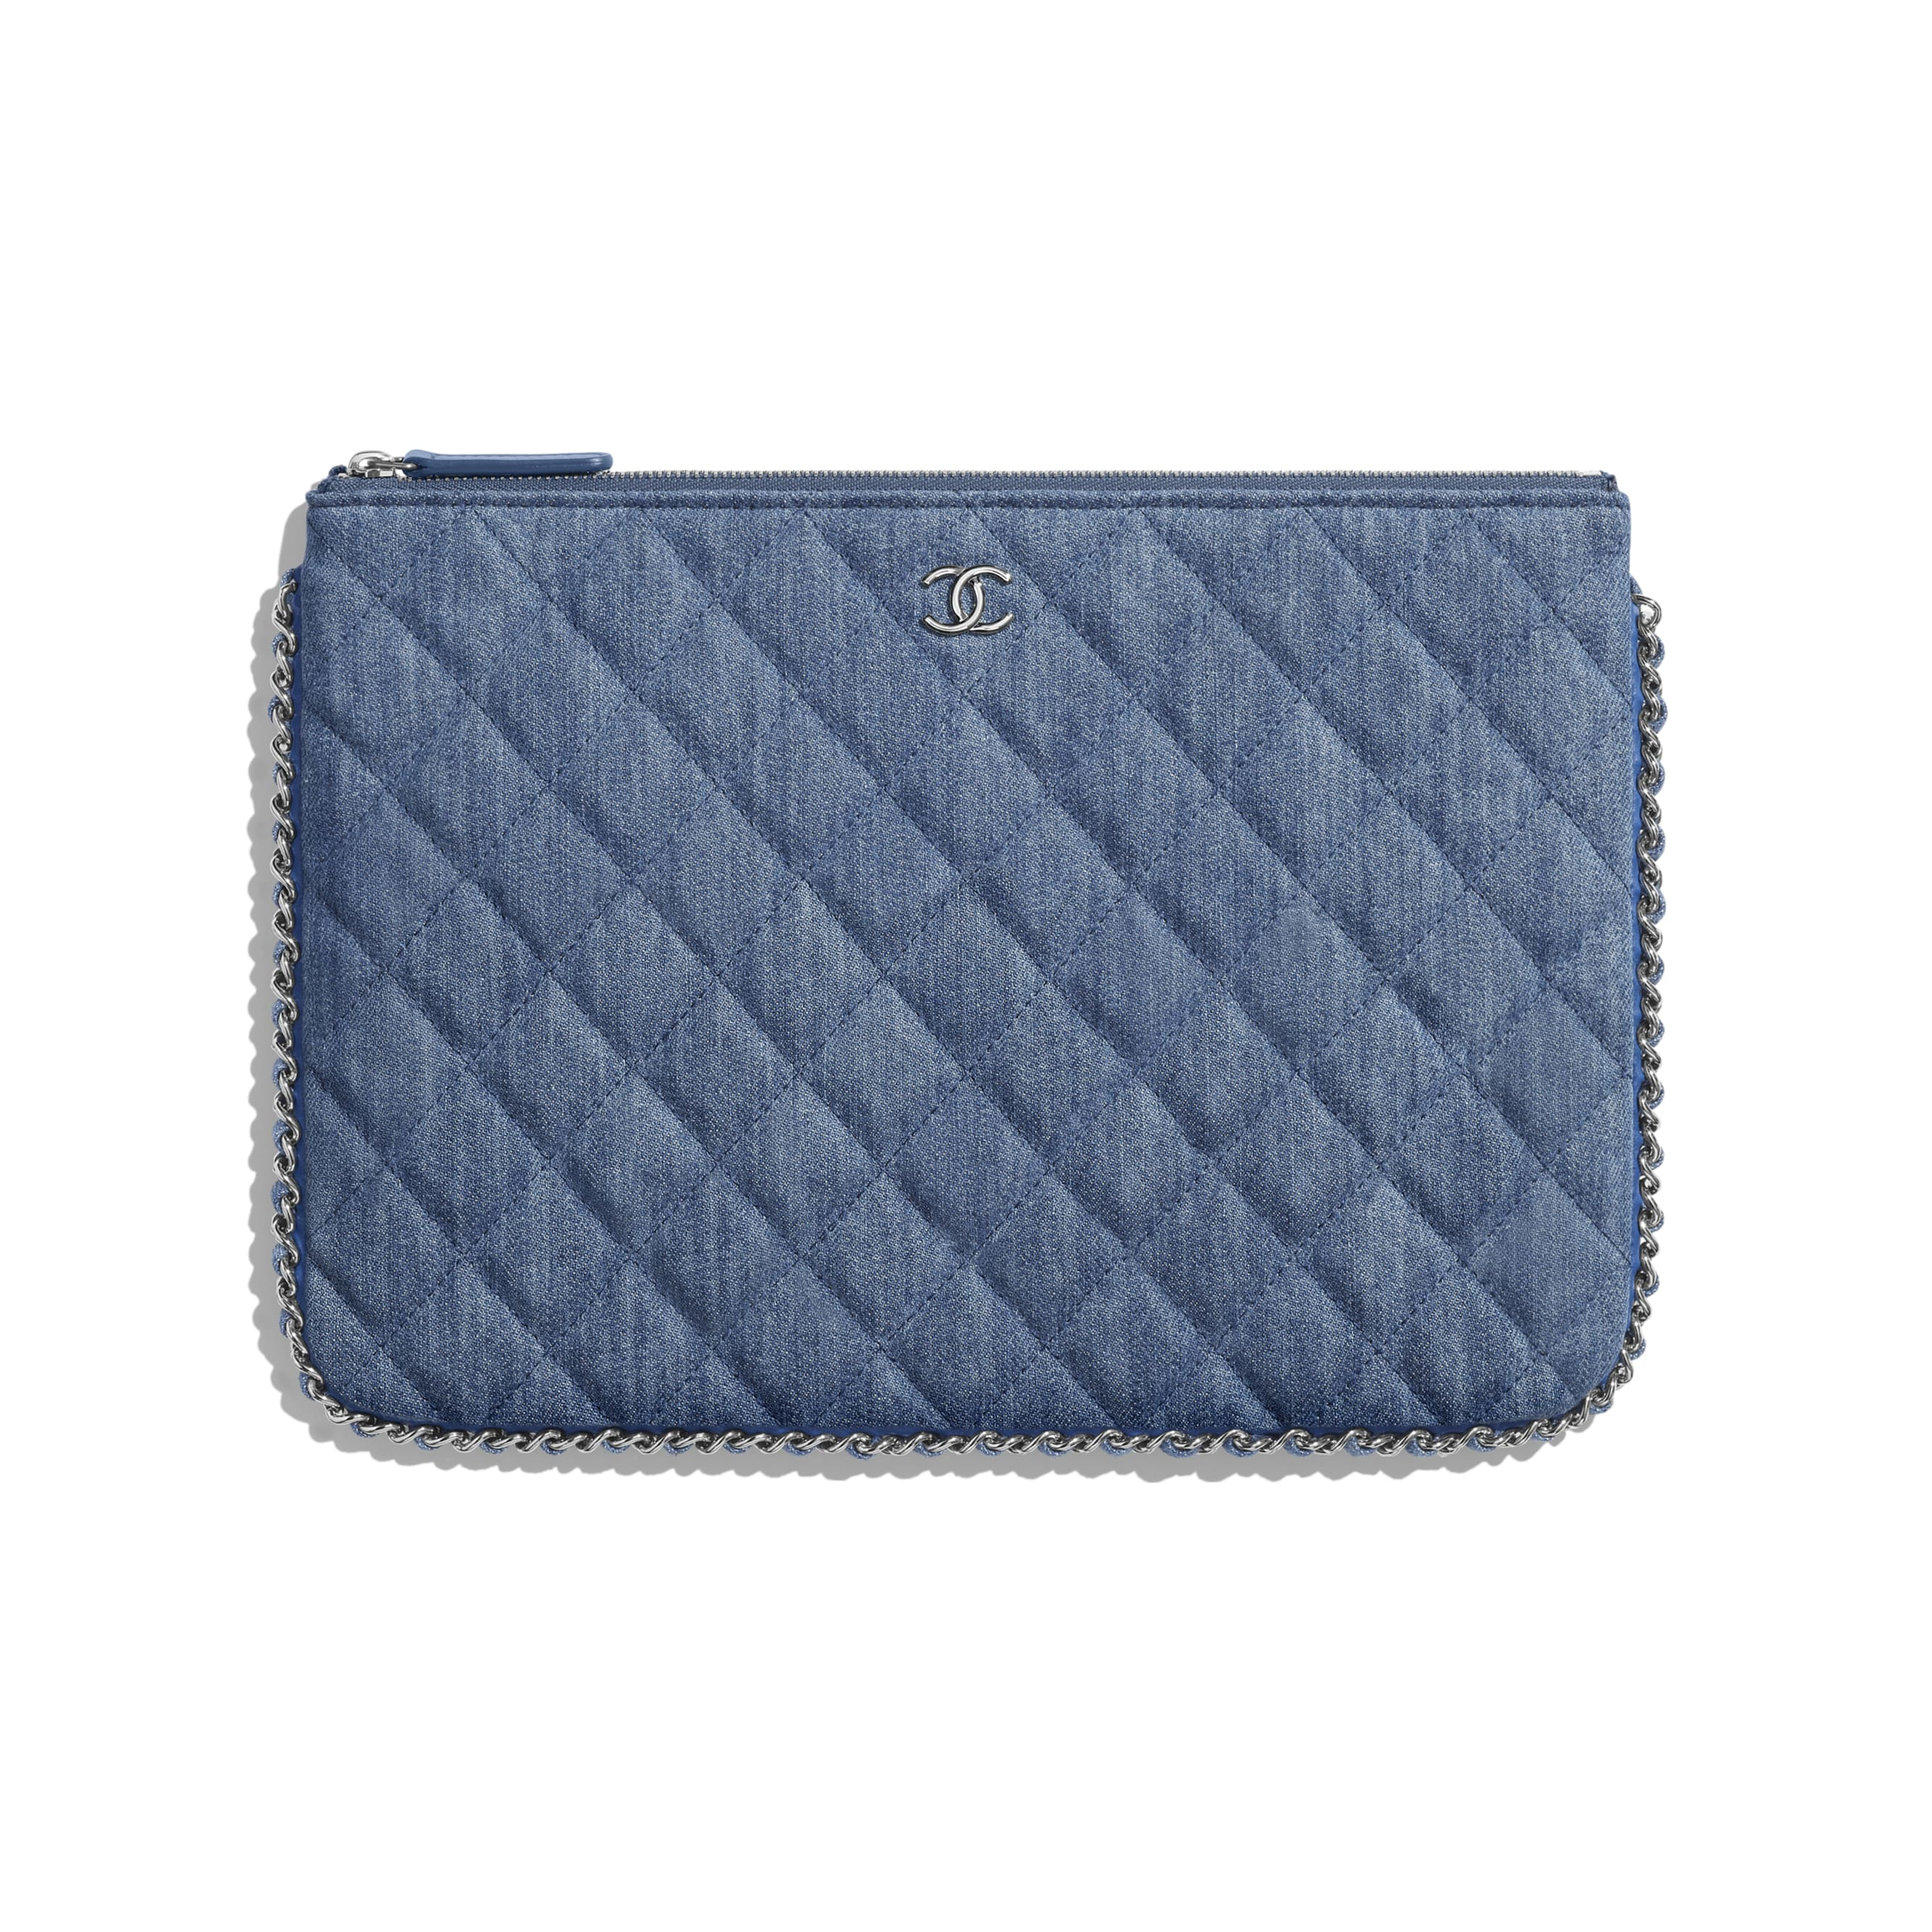 Pouch - Blue - Denim, Chain & Silver-Tone Metal - Default view - see standard sized version